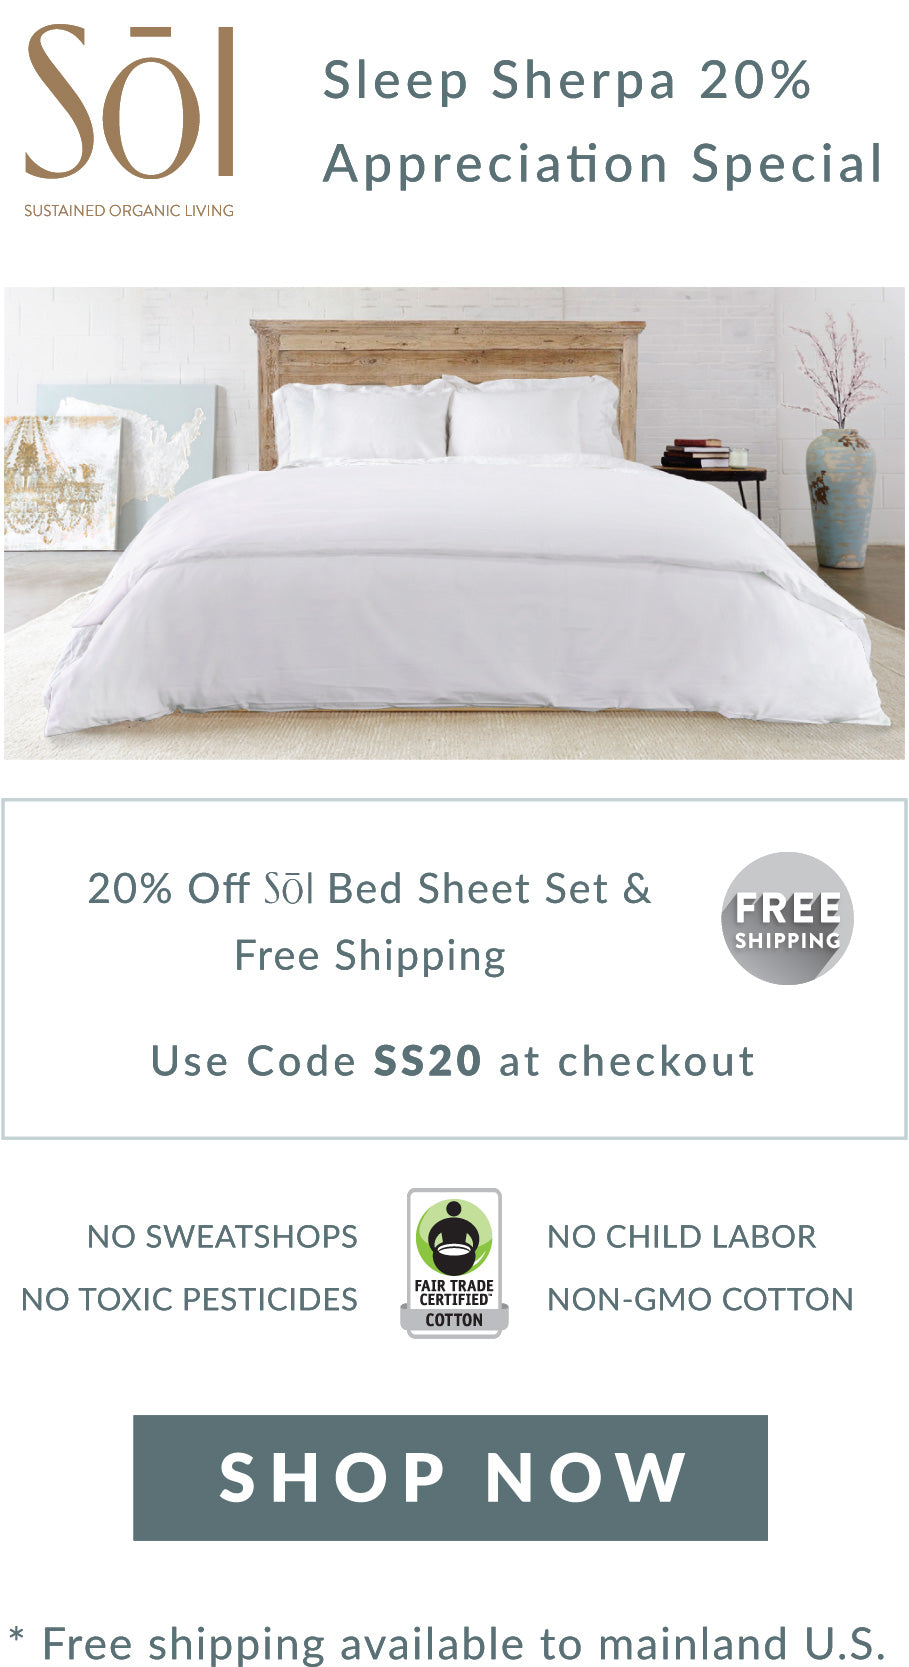 SOL Organics Certified Fair Trade Organic Cotton Bed Sheet Sets